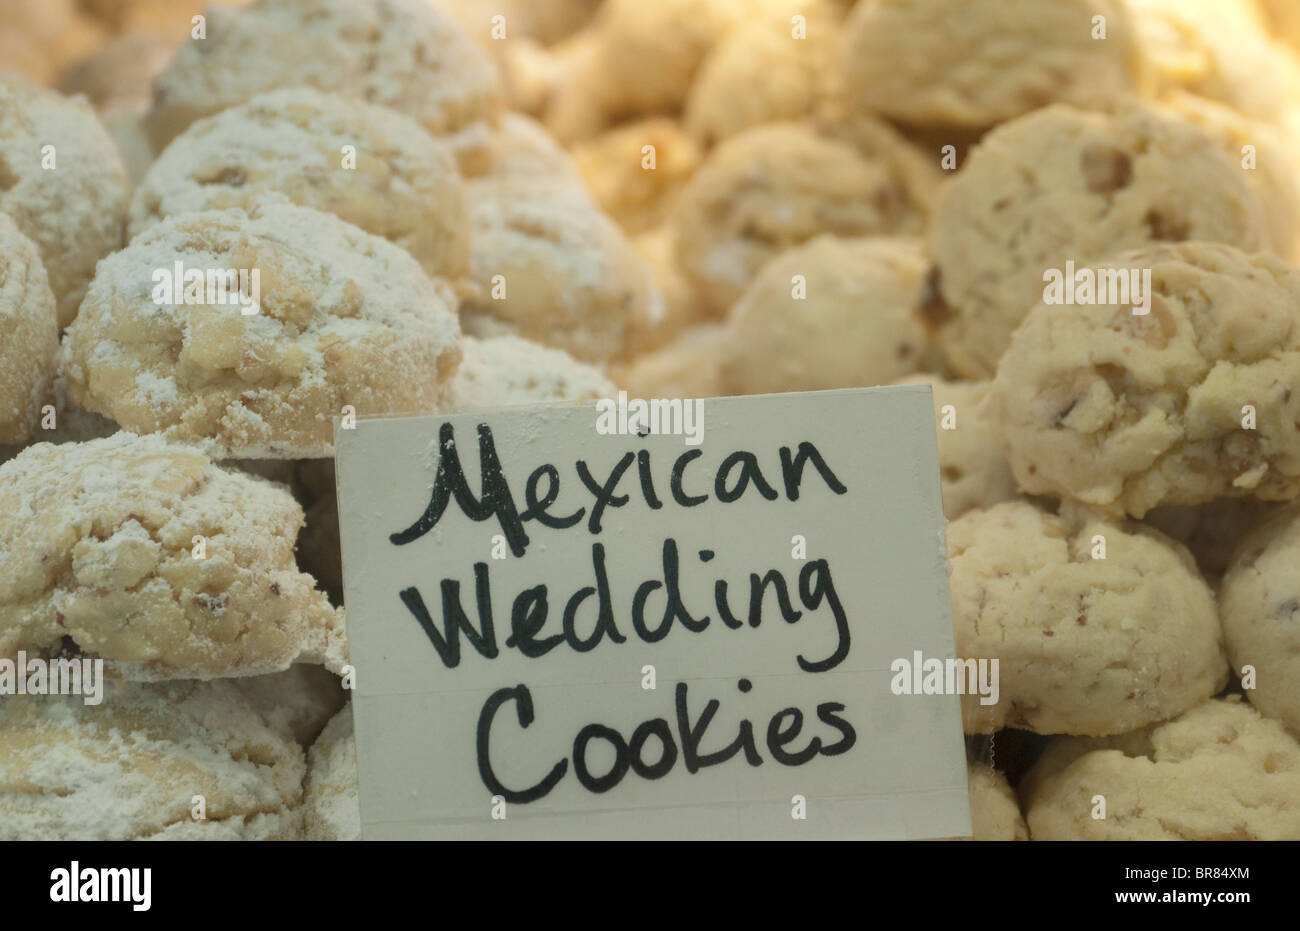 traditional mexican wedding cookies on display at a bakery on linden